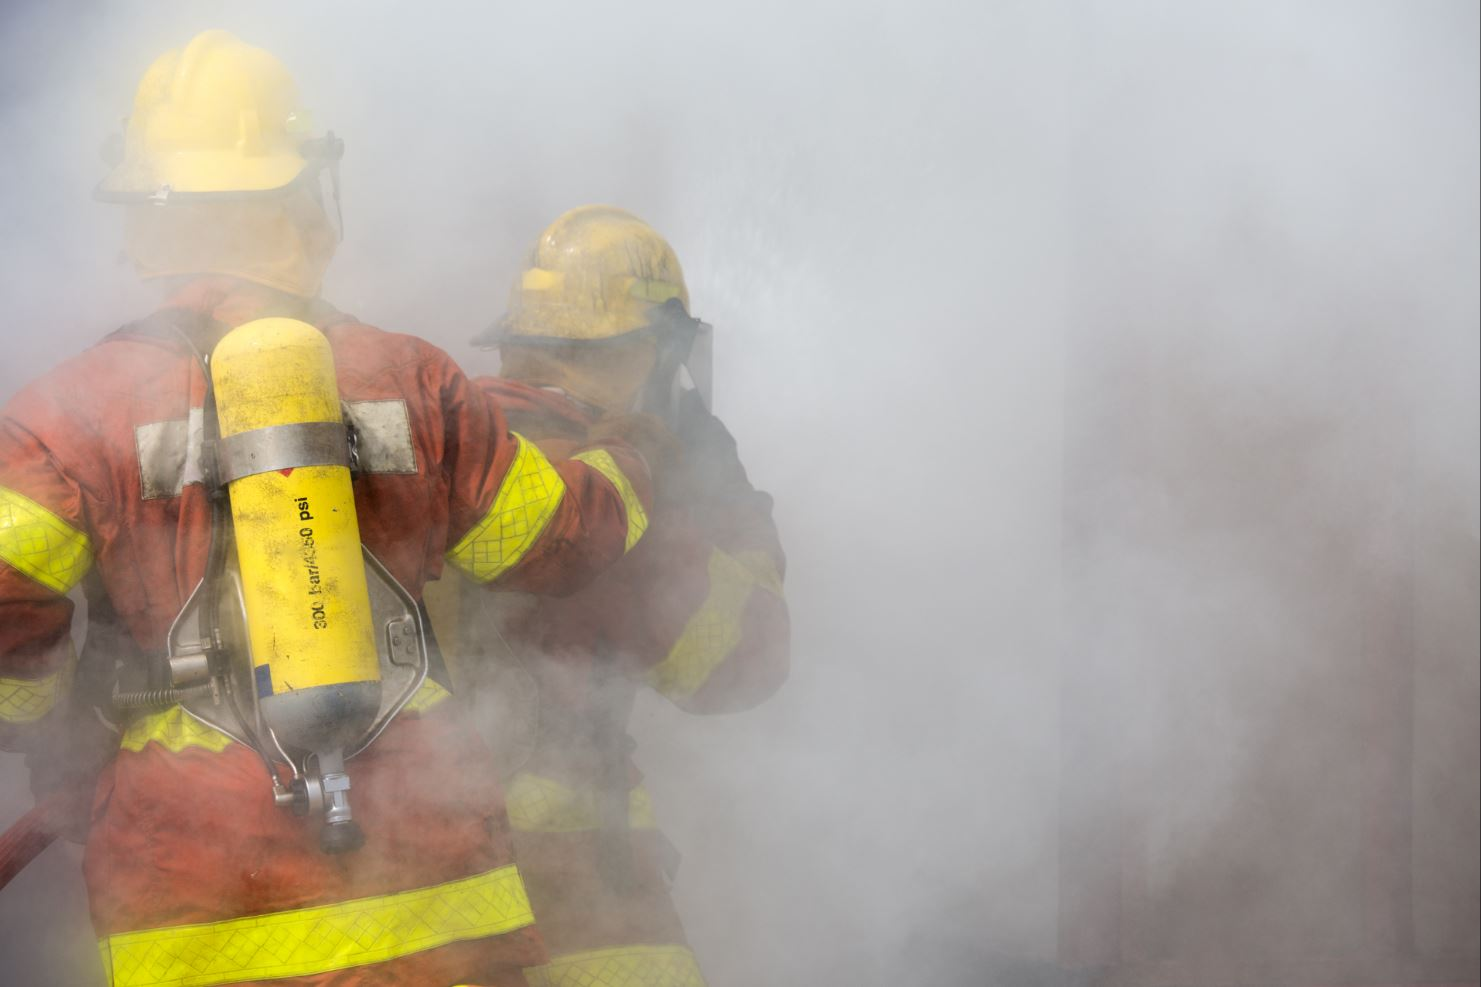 Firefighters walking into the cloud of smoke.